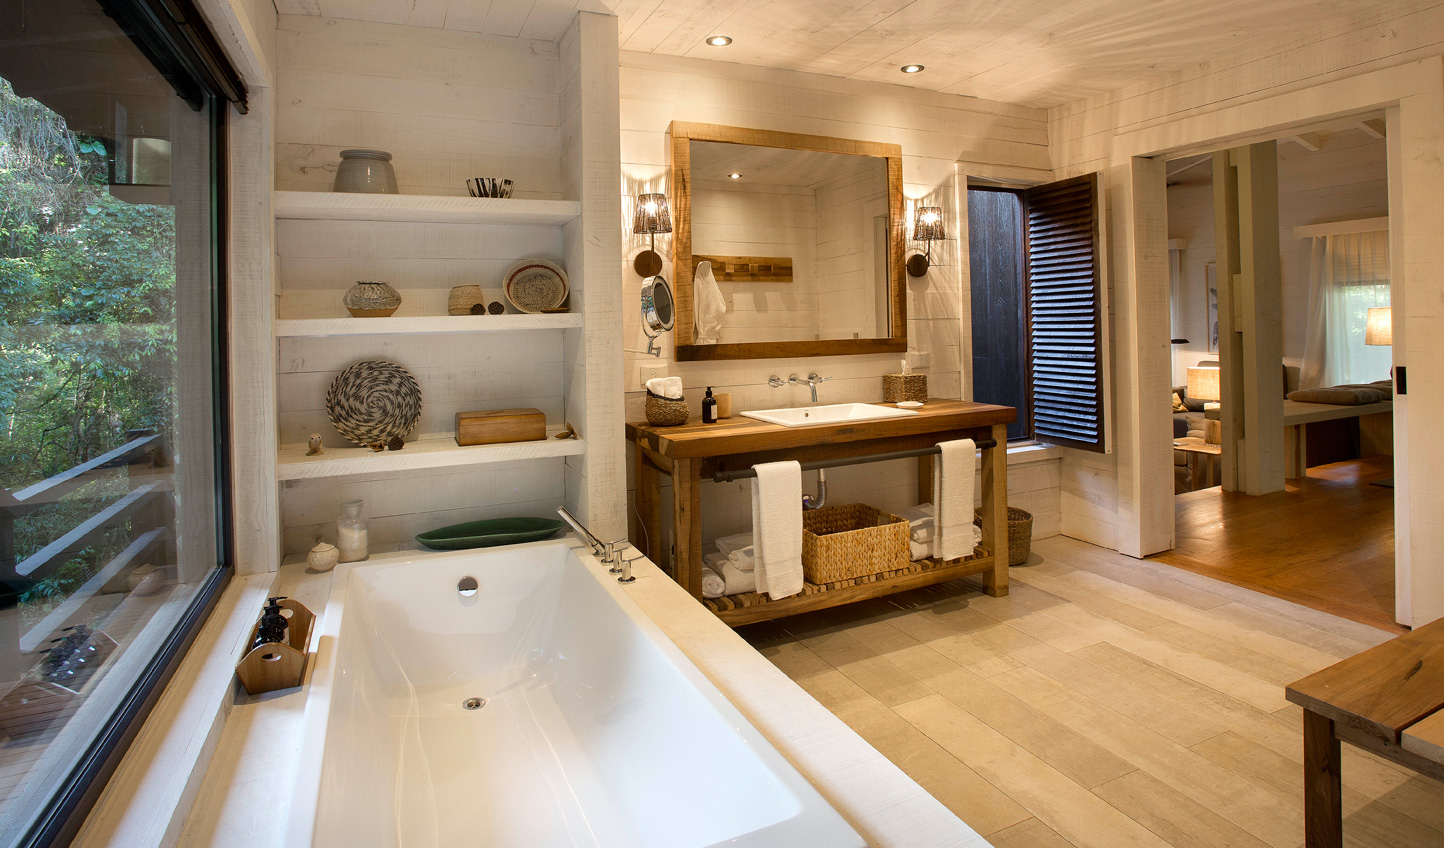 Soak in the sights of the jungle from your luxurious villa bathroom